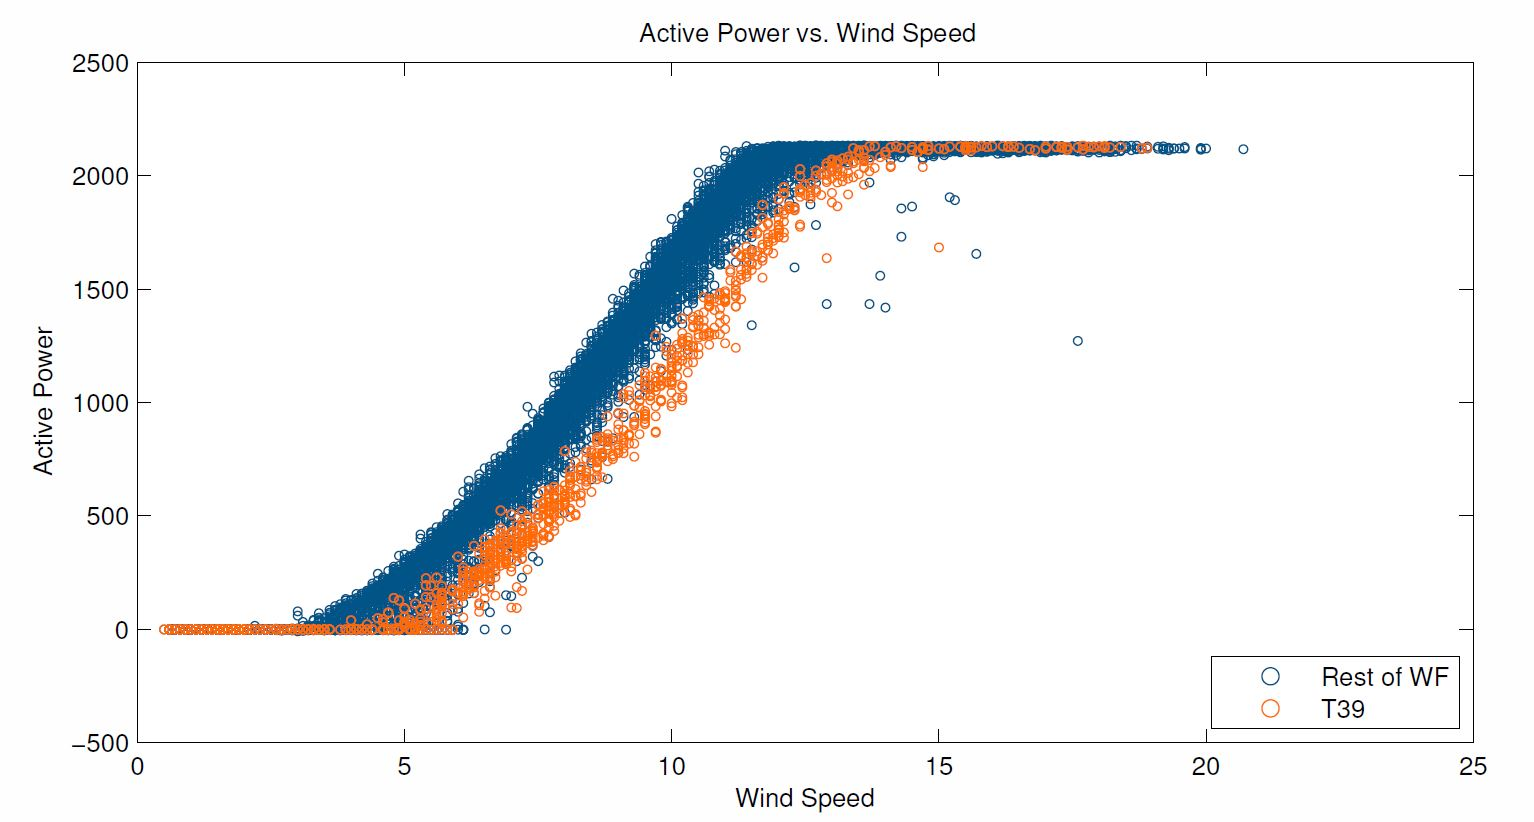 Wind Turbine Power Curve Underperformance – Wind Vane Misalignment